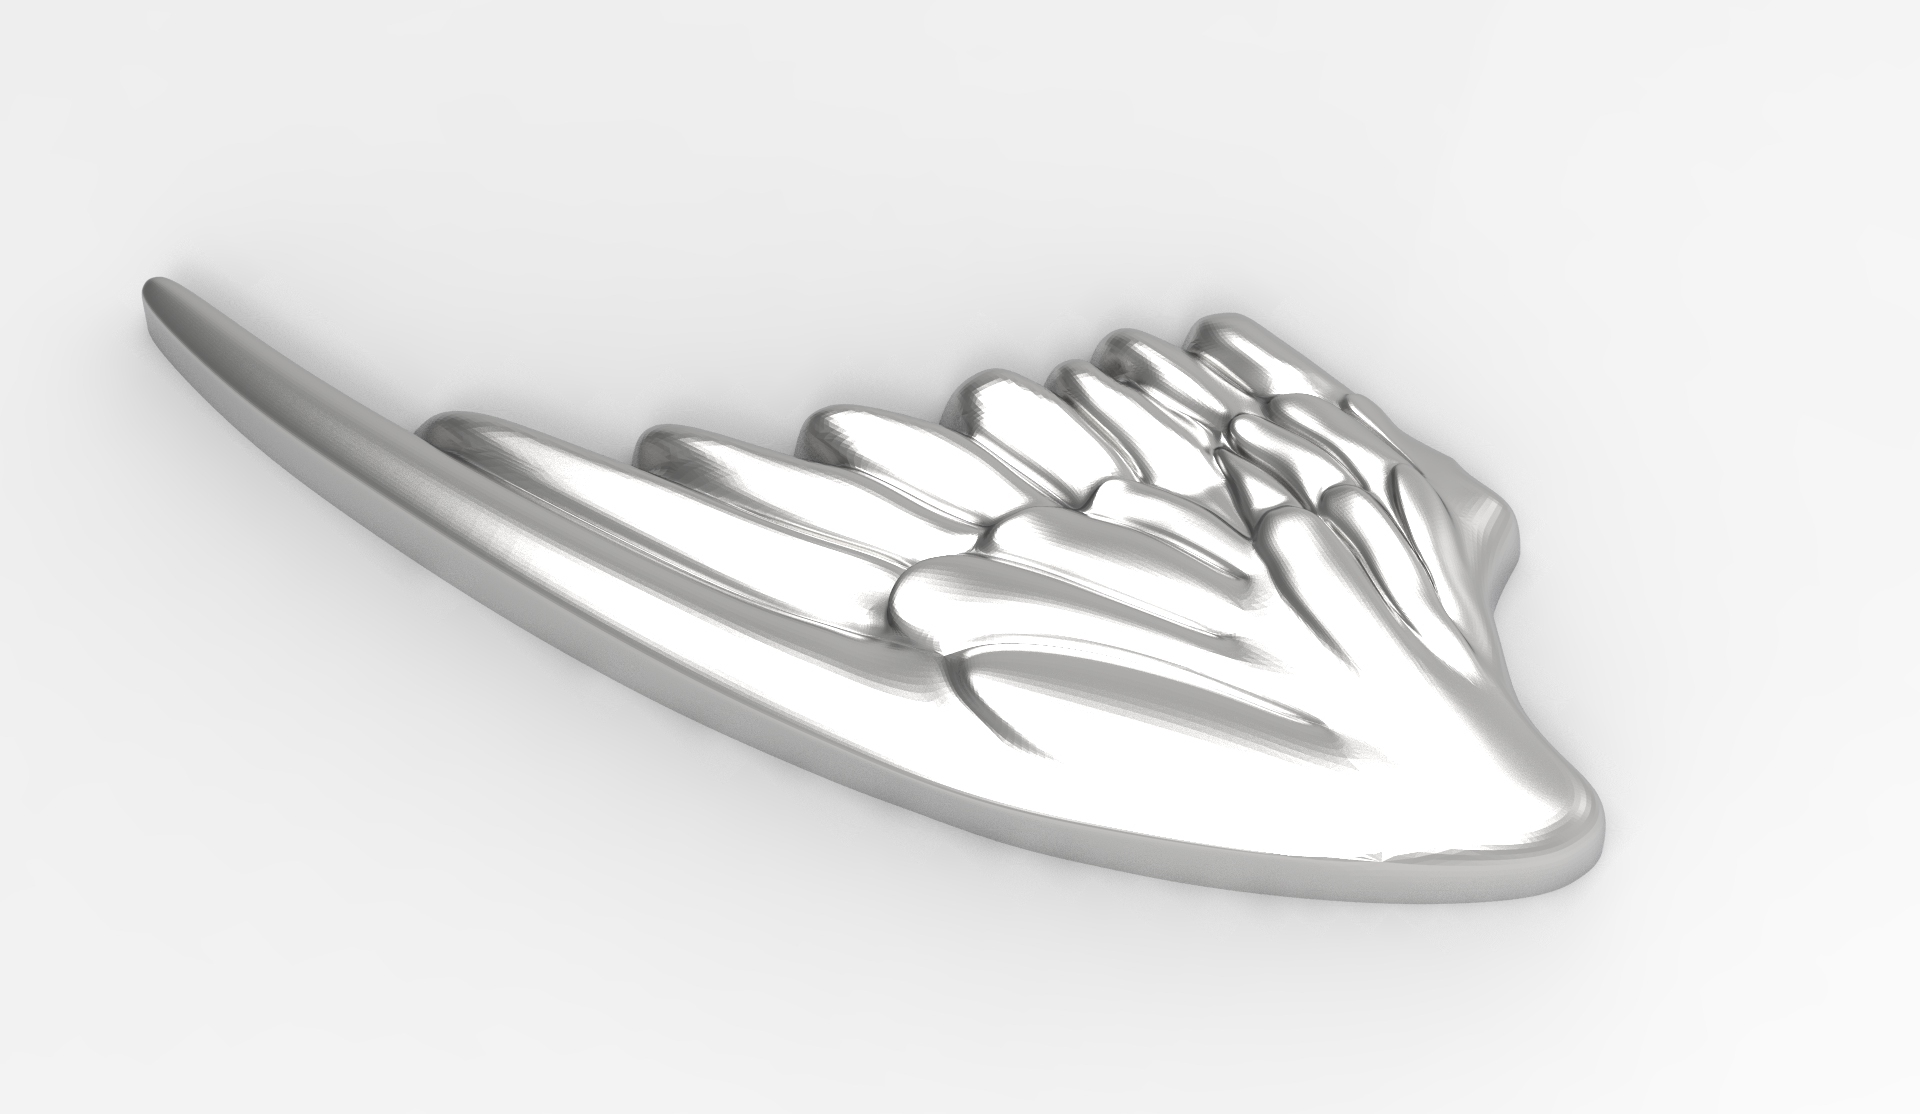 AILES r5.jpg Download STL file Wings in low relief angel bird sculpture plaster wood • Object to 3D print, Vape